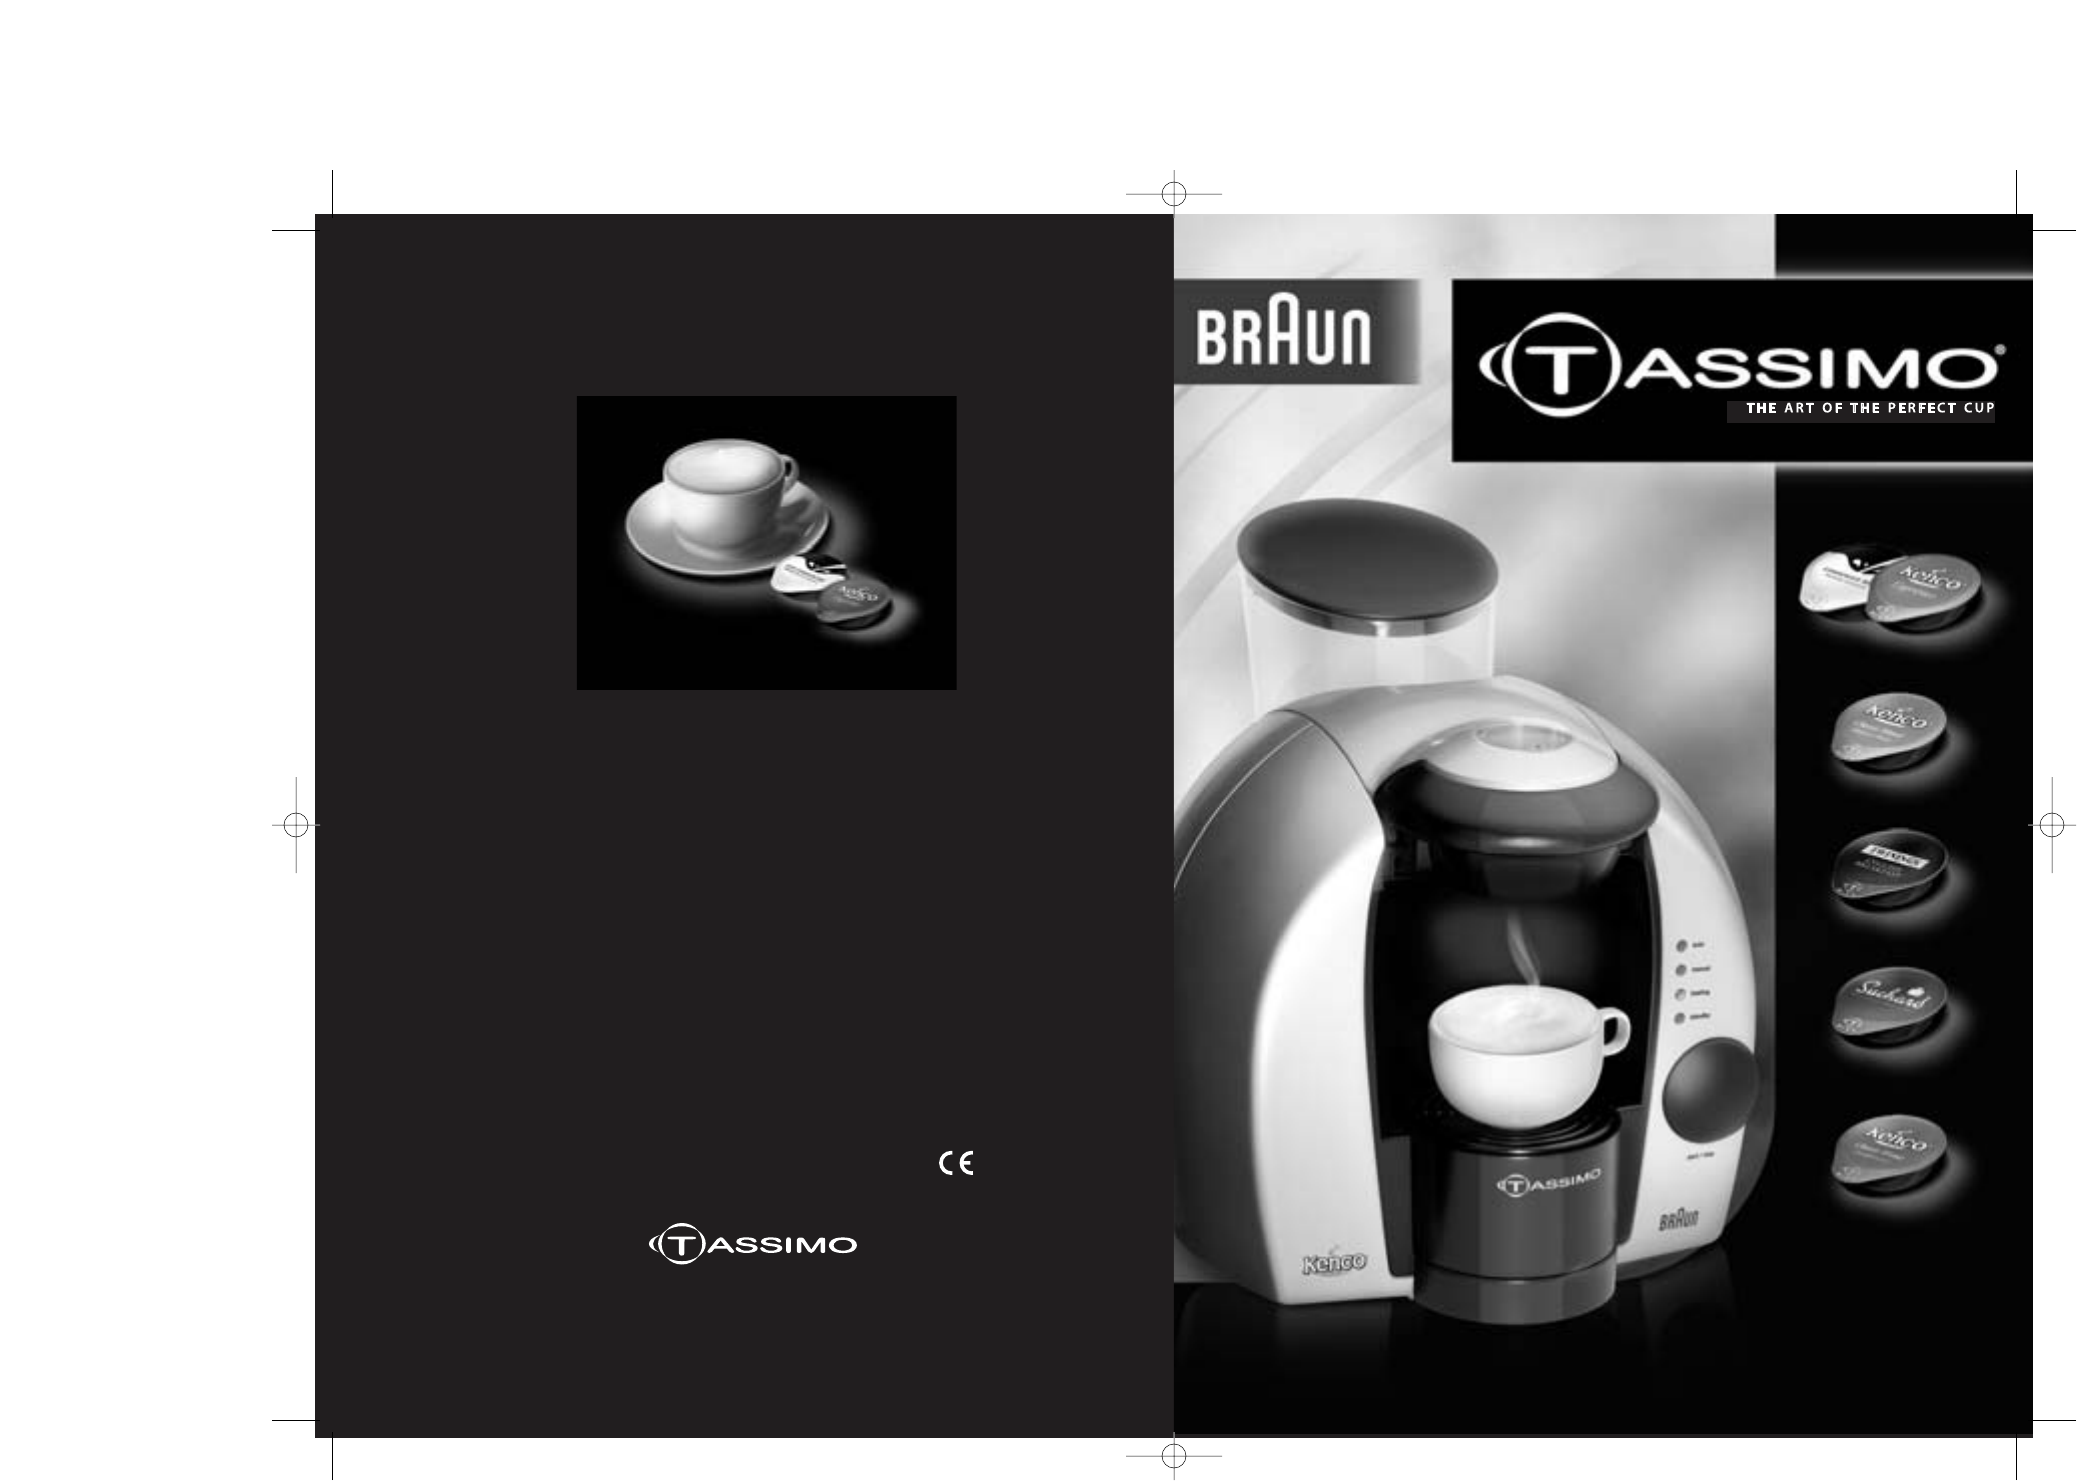 braun coffeemaker 3107 user guide manualsonline com rh kitchen manualsonline com braun tassimo 3107 instruction manual Braun Tassimo Replacement Parts